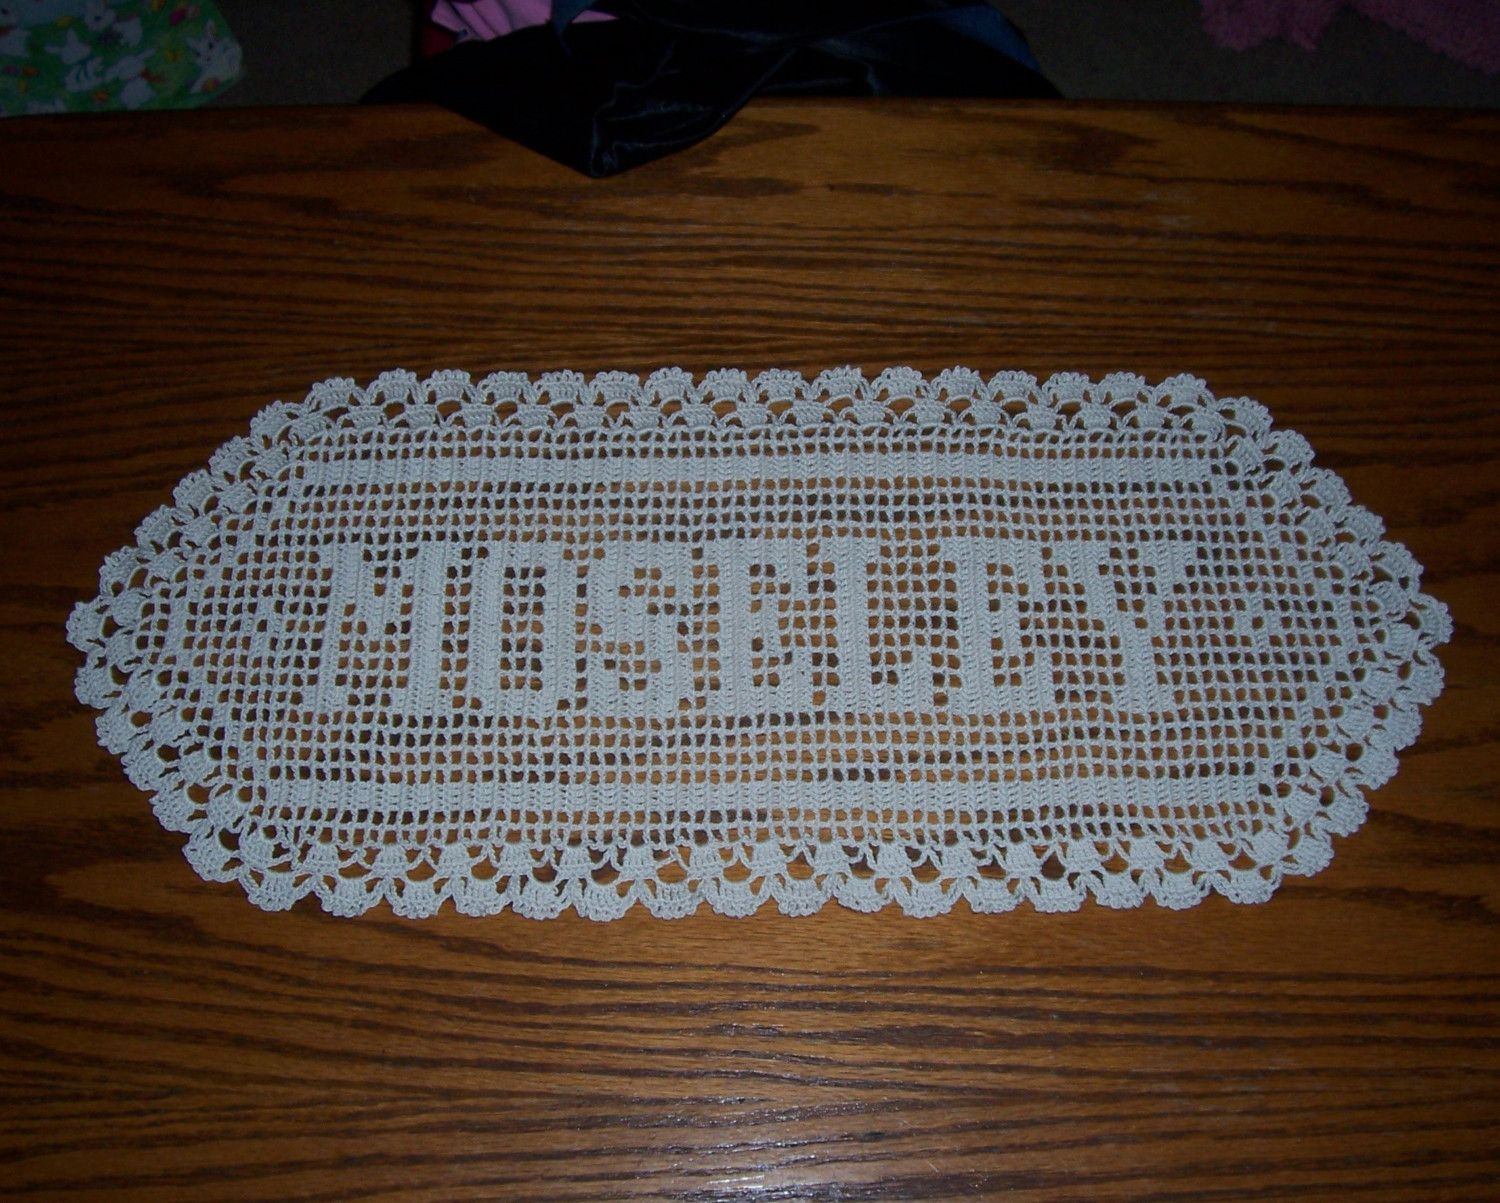 Filet Crochet  How To Graph A Pattern For A Filet Crochet Name Doily   Associated